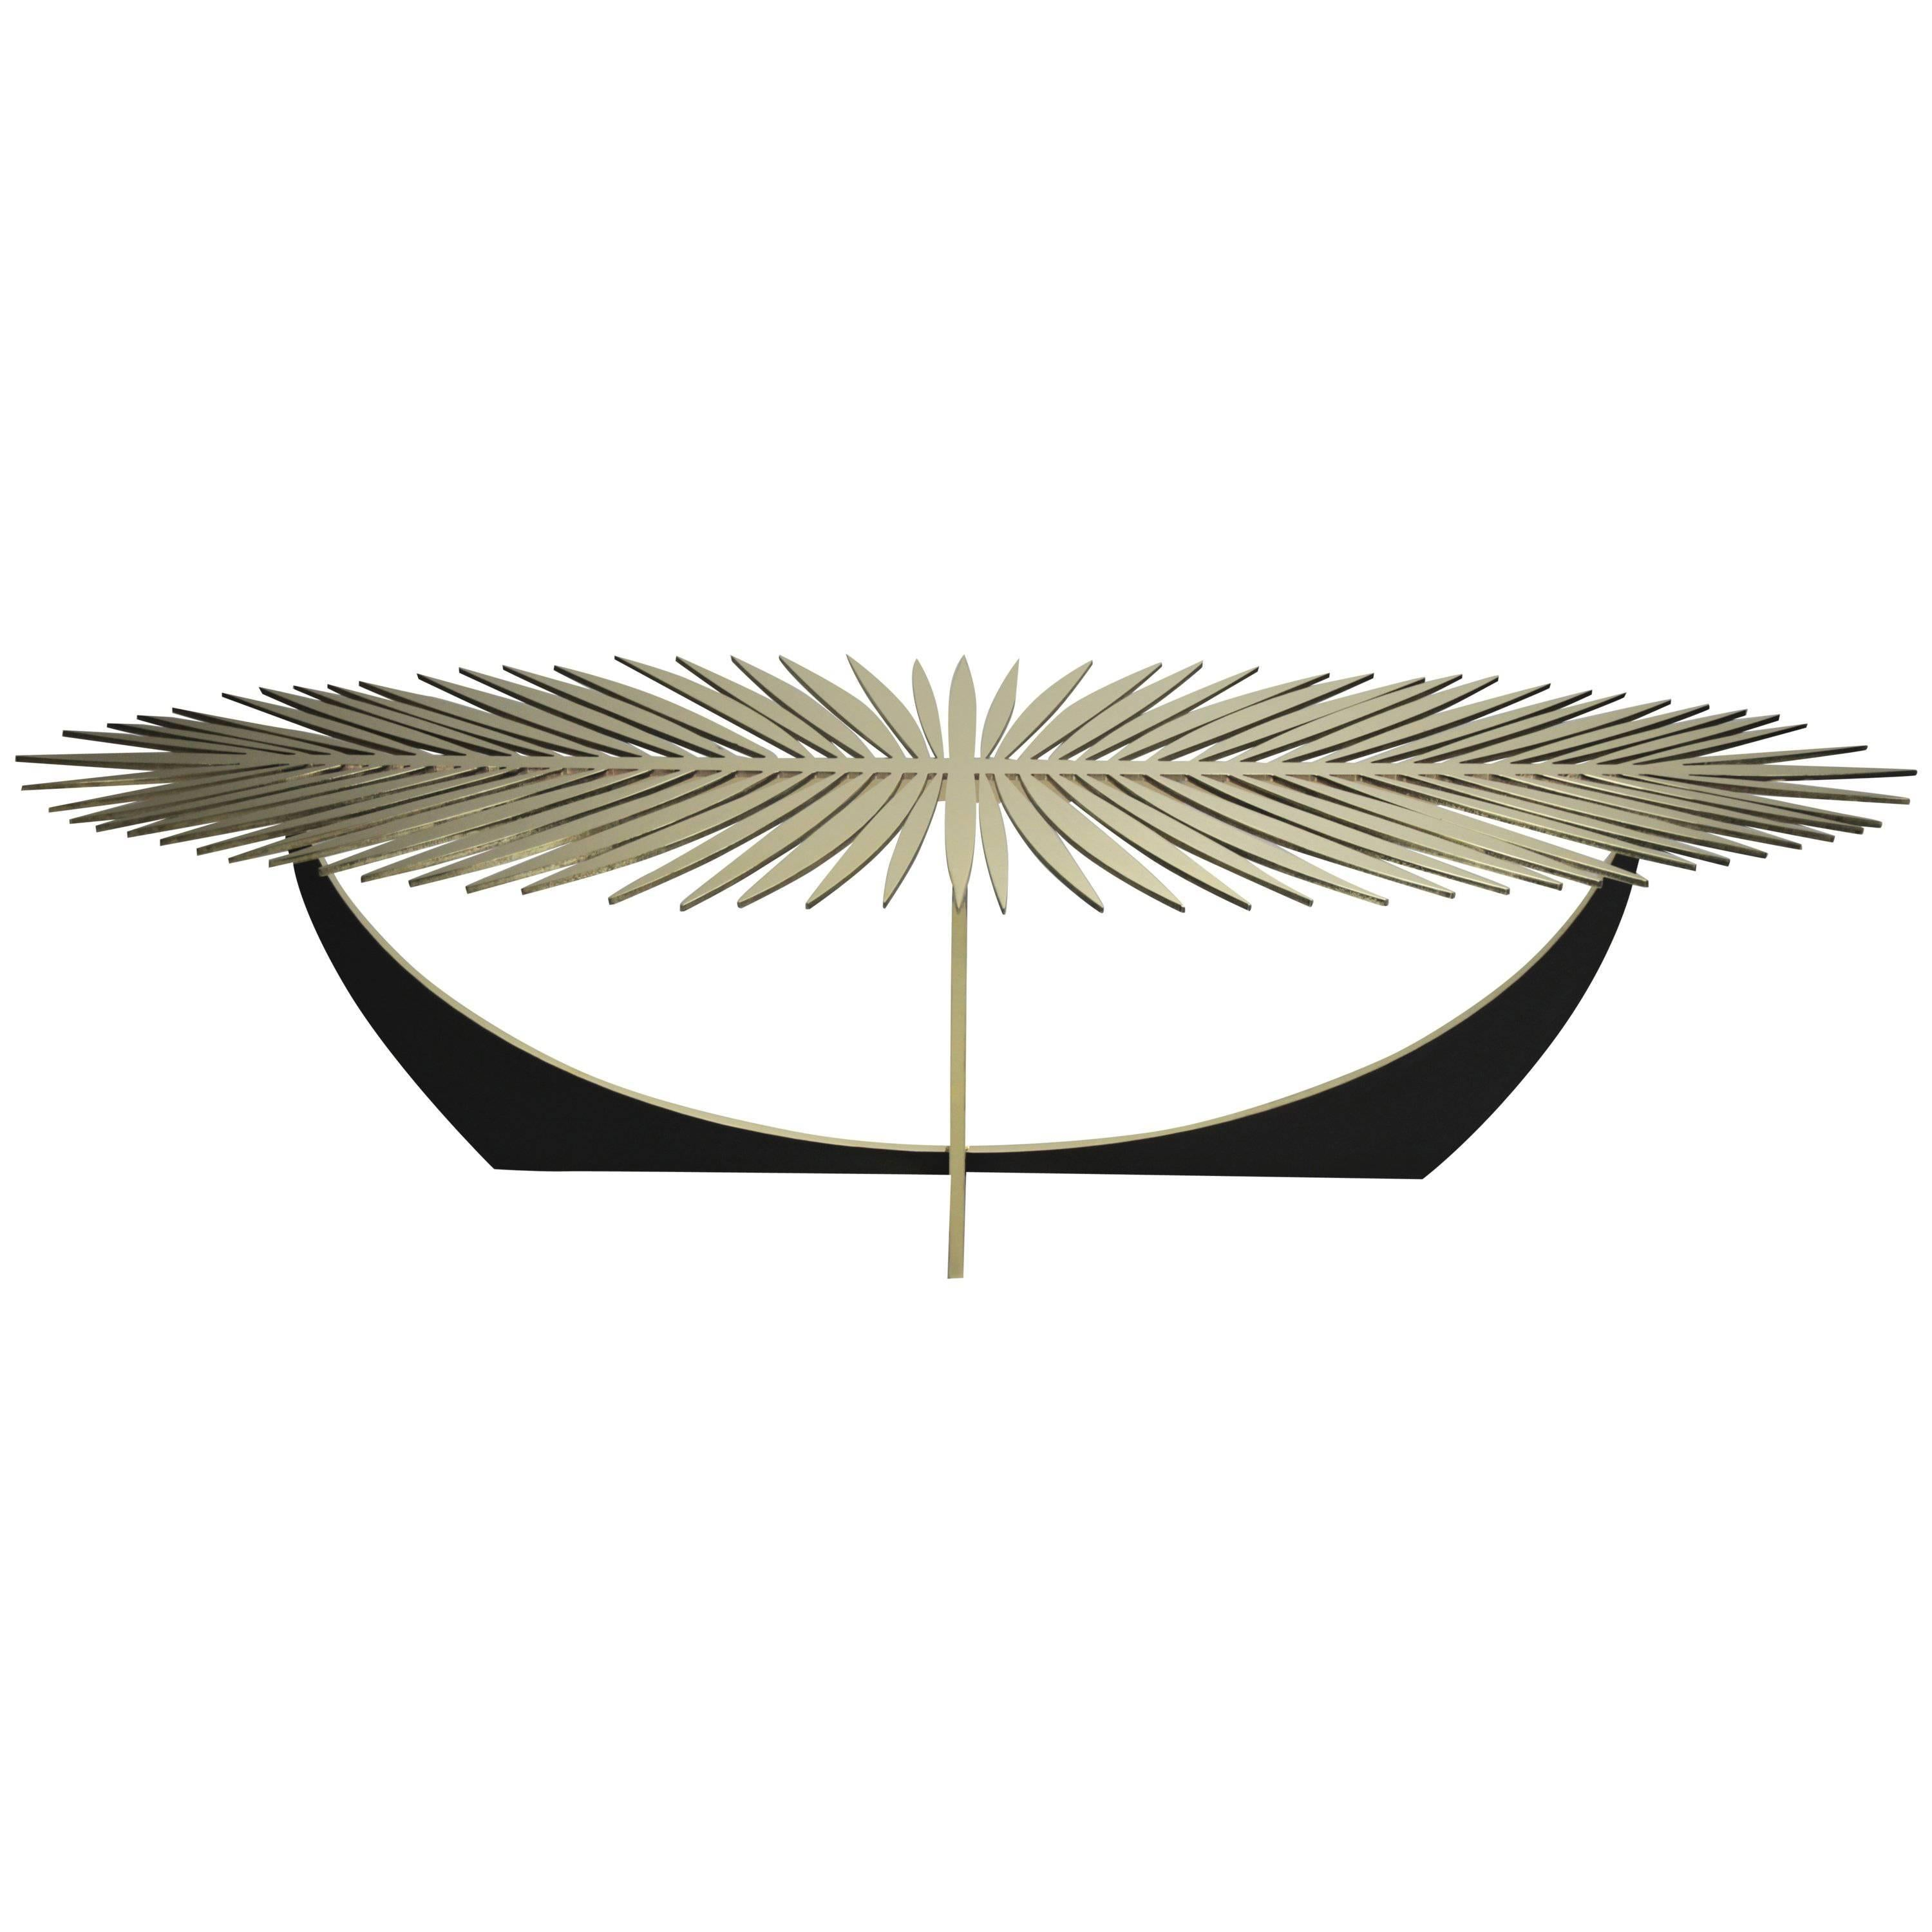 DOUBLE FROND TABLE in solid brass by Christopher Kreiling Studio